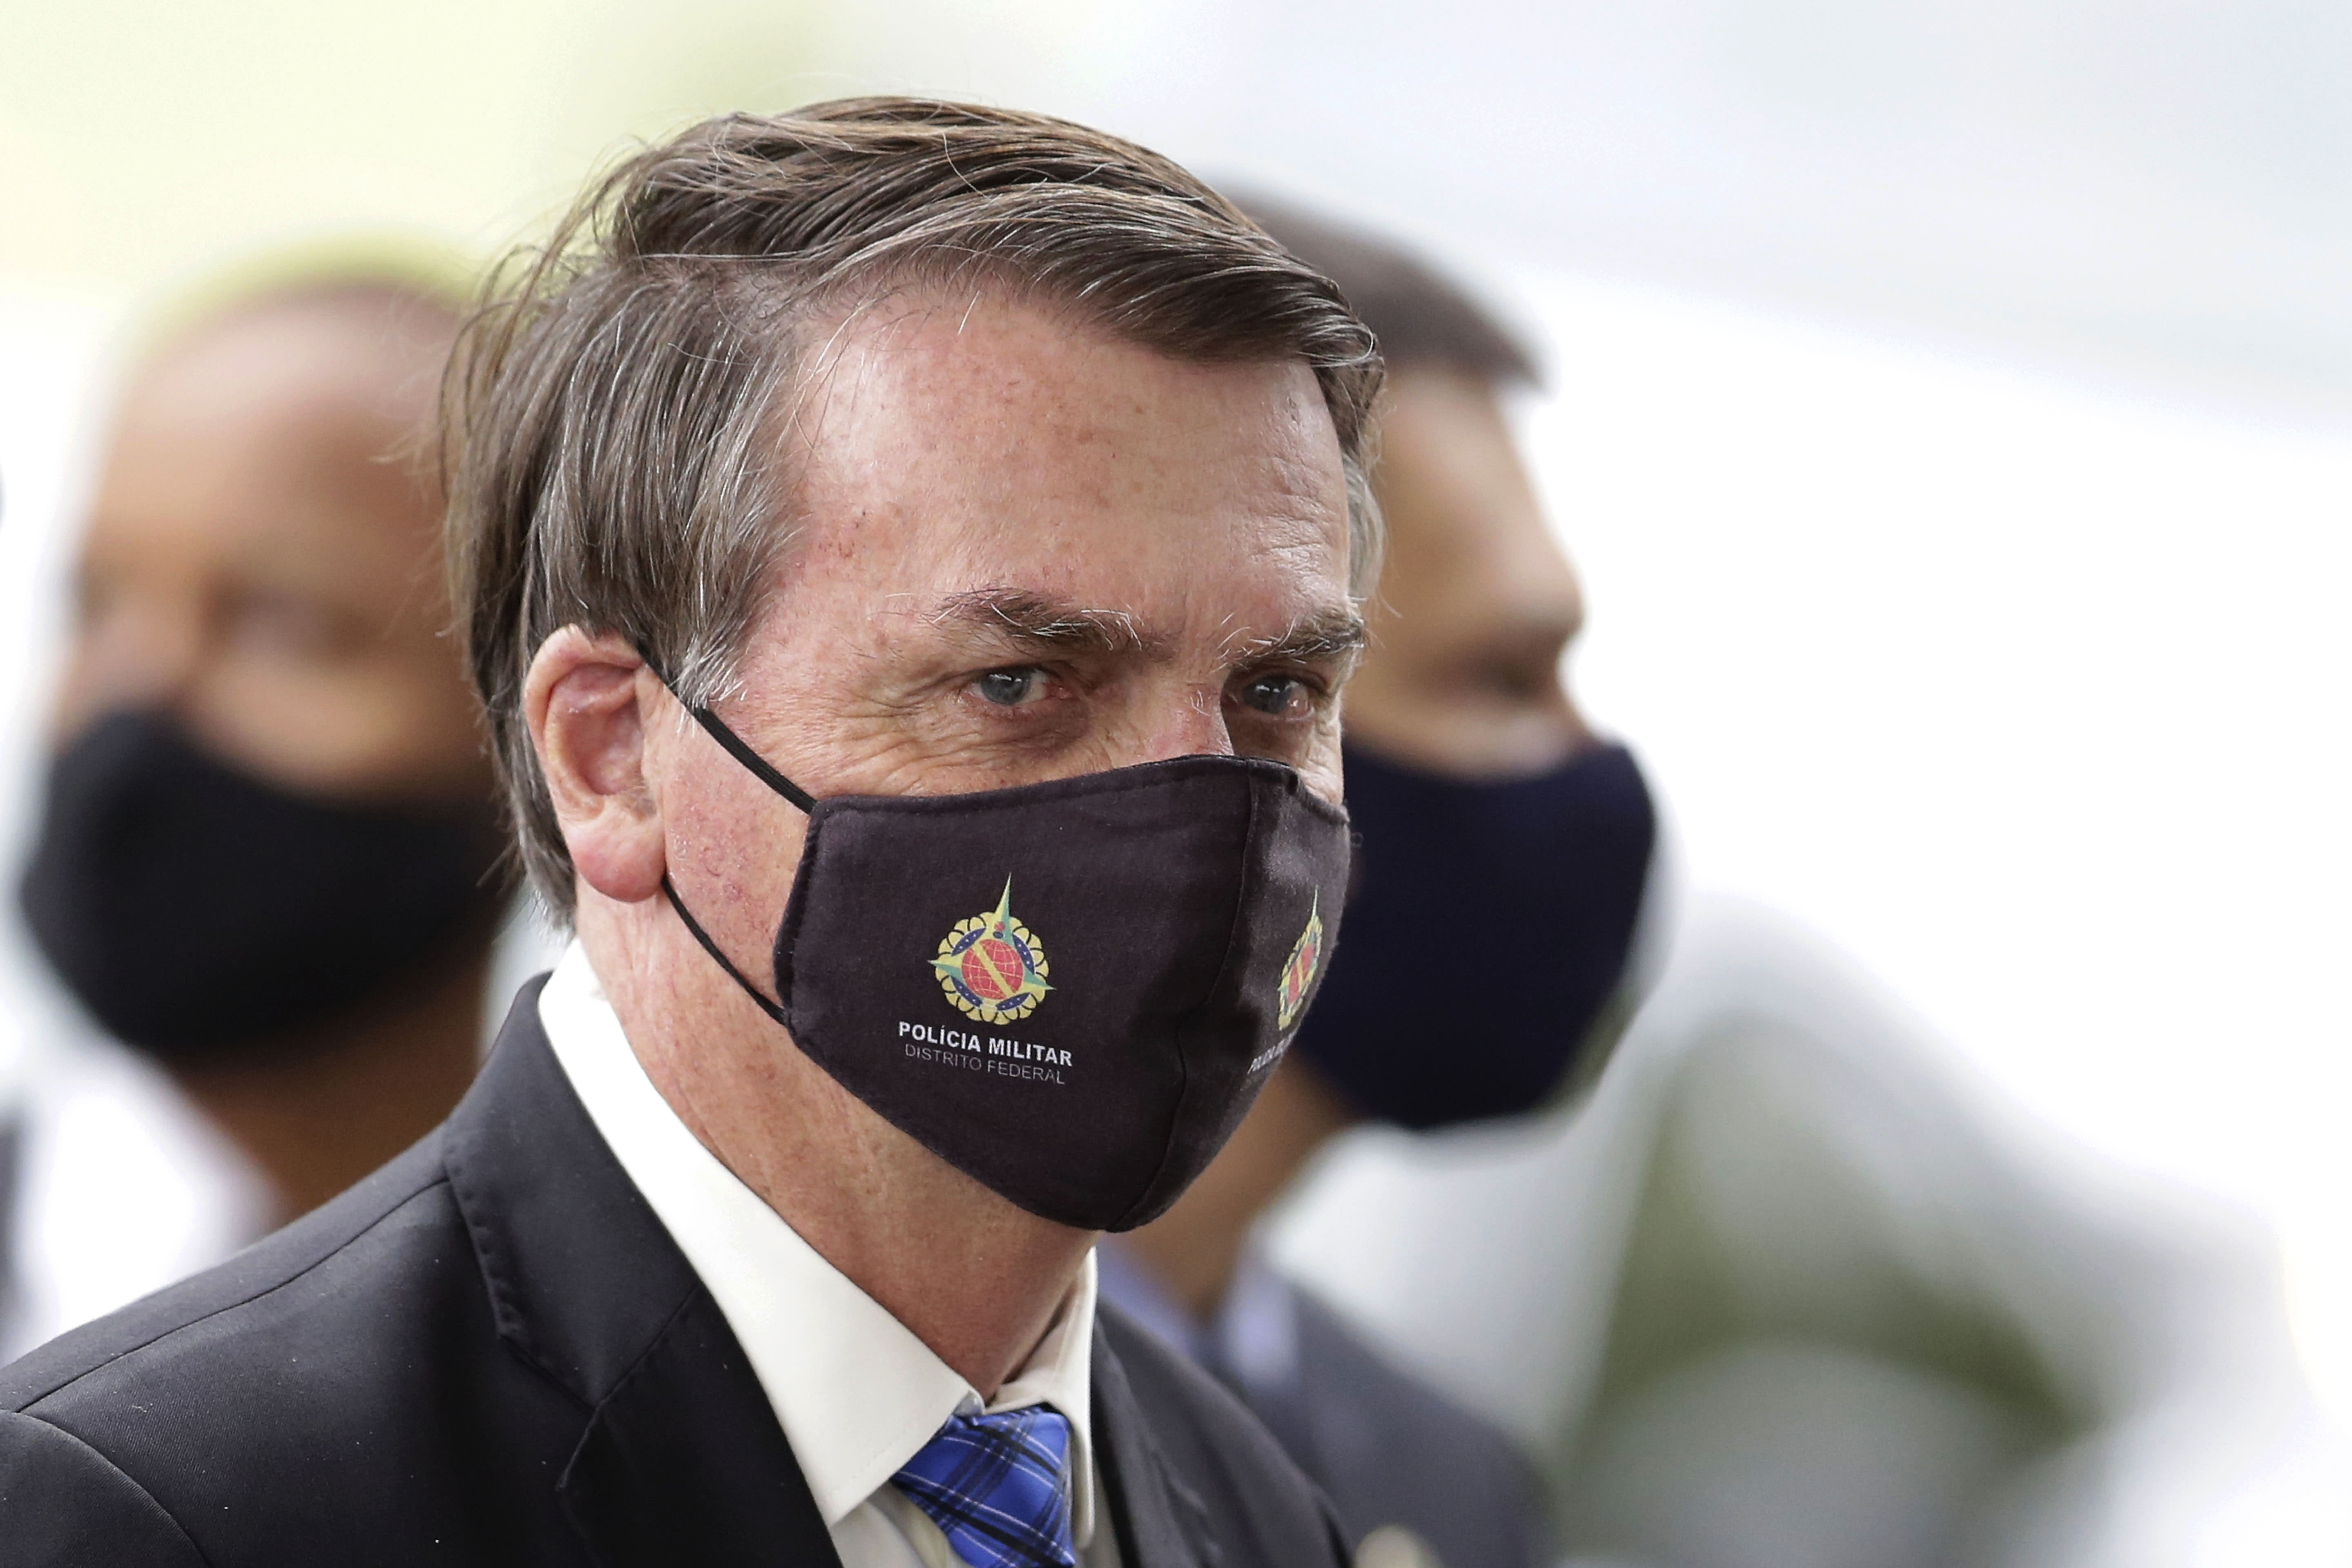 """FILE - In this May 18, 2020, file photo, Brazilian President Jair Bolsonaro wears a mask due to the coronavirus pandemic as he talks with supporters upon departure from his official residence, Alvorada palace, in Brasilia, Brazil. The logo on the mask reads """"Military Police. Federal District."""" After 35 years of civilian-led democracy, Bolsonaro has created the most militarized Brazilian government since the fall of the country's army-led dictatorship. (AP Photo/Eraldo Peres, File)"""